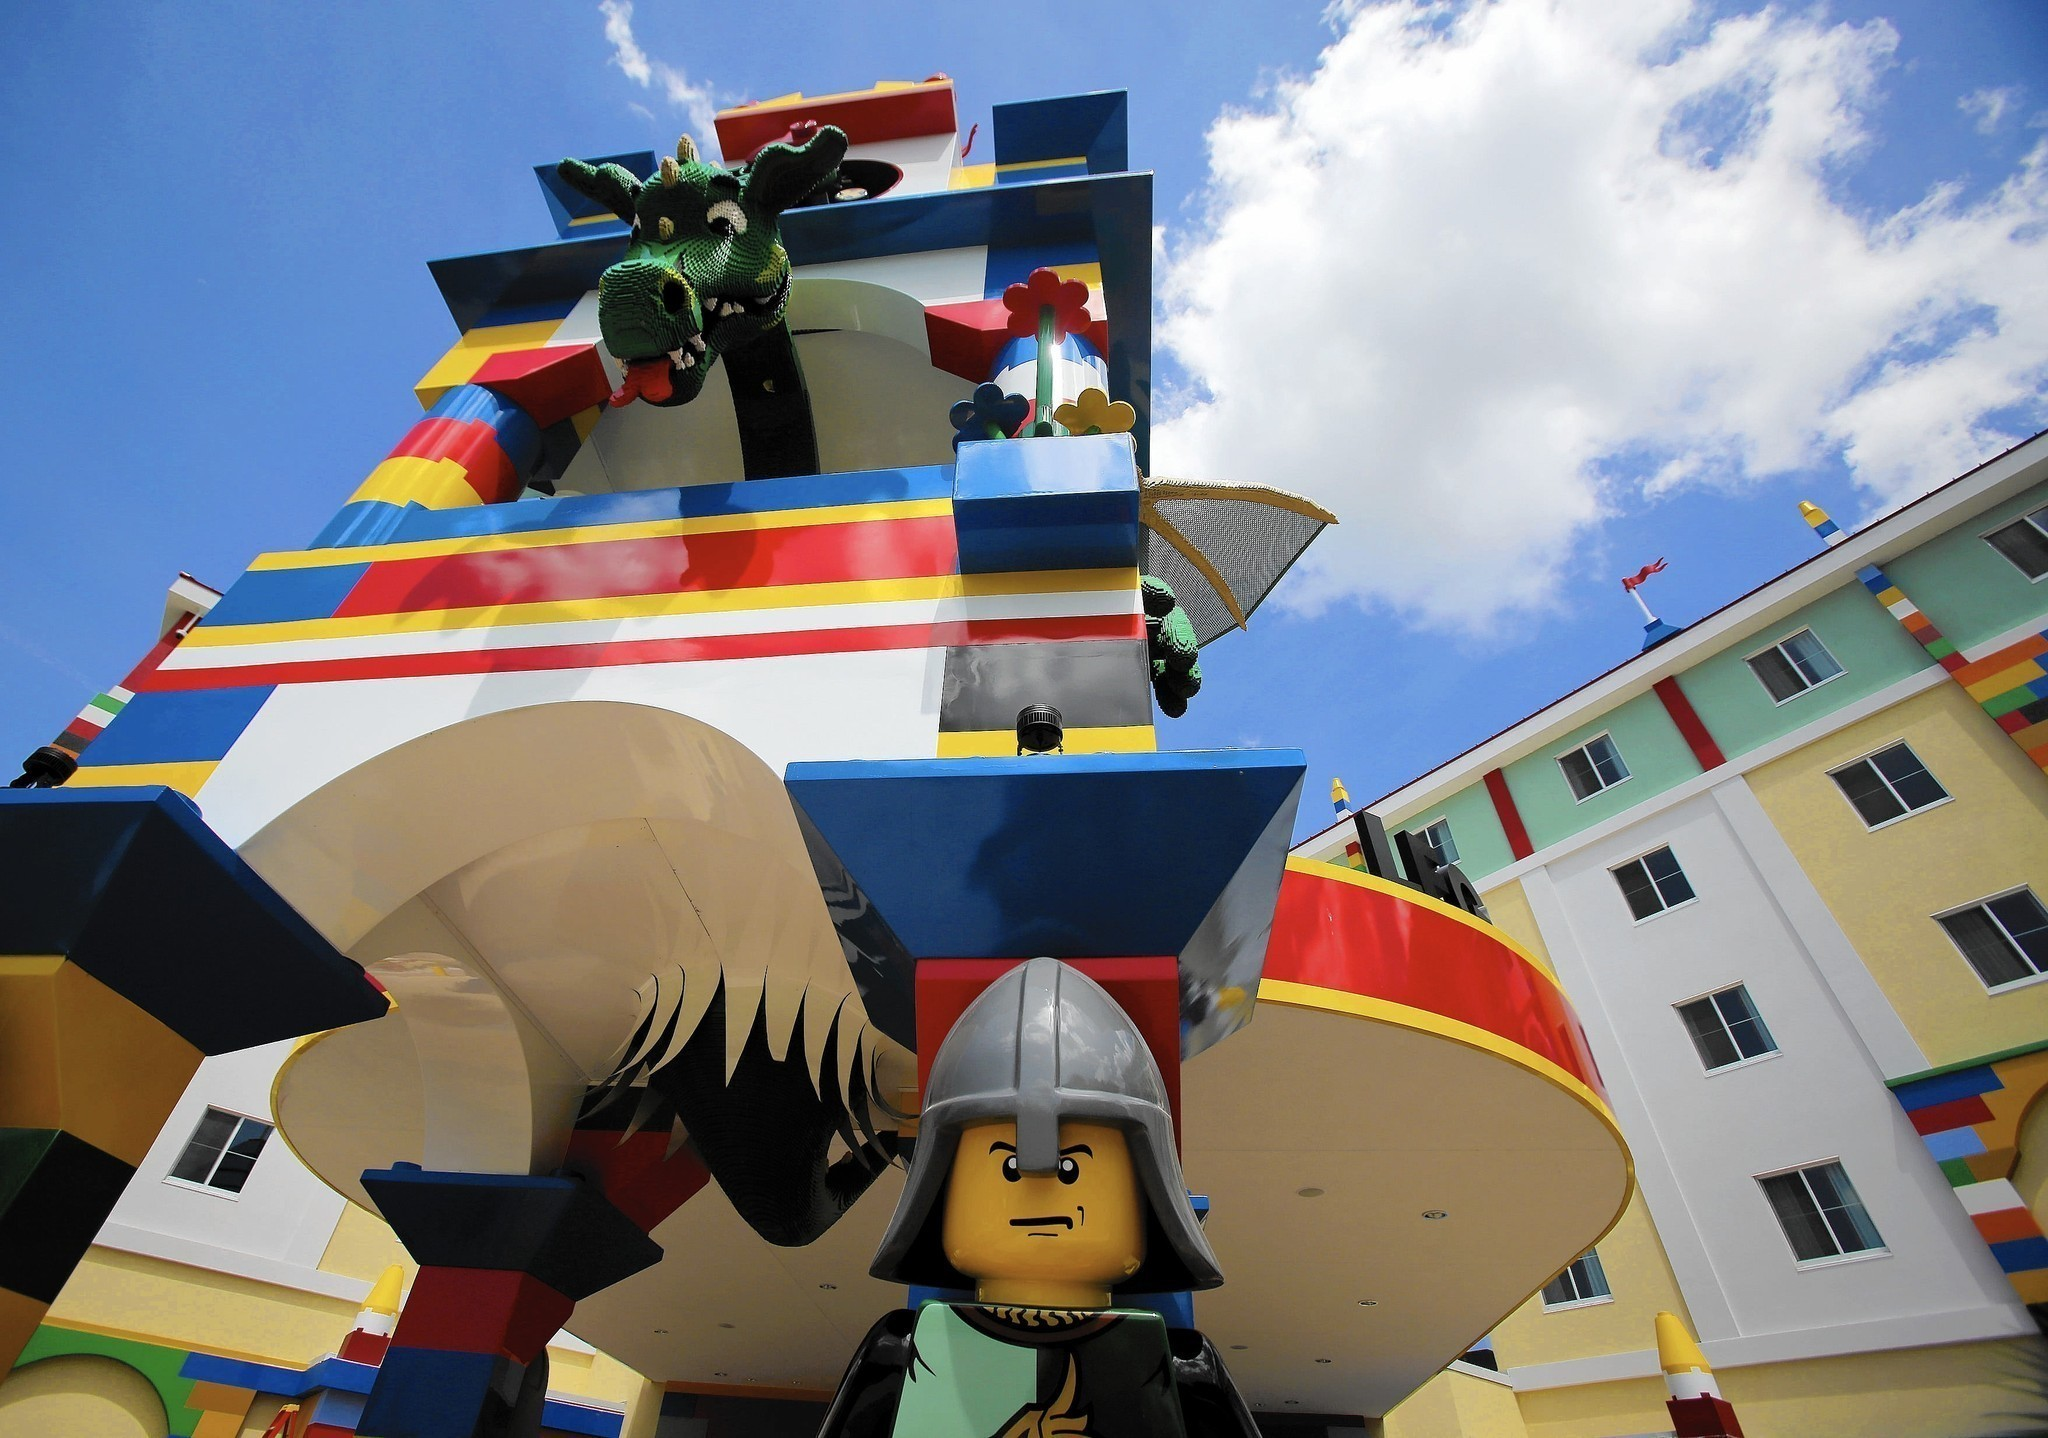 legoland florida starts process of annexation to winter haven